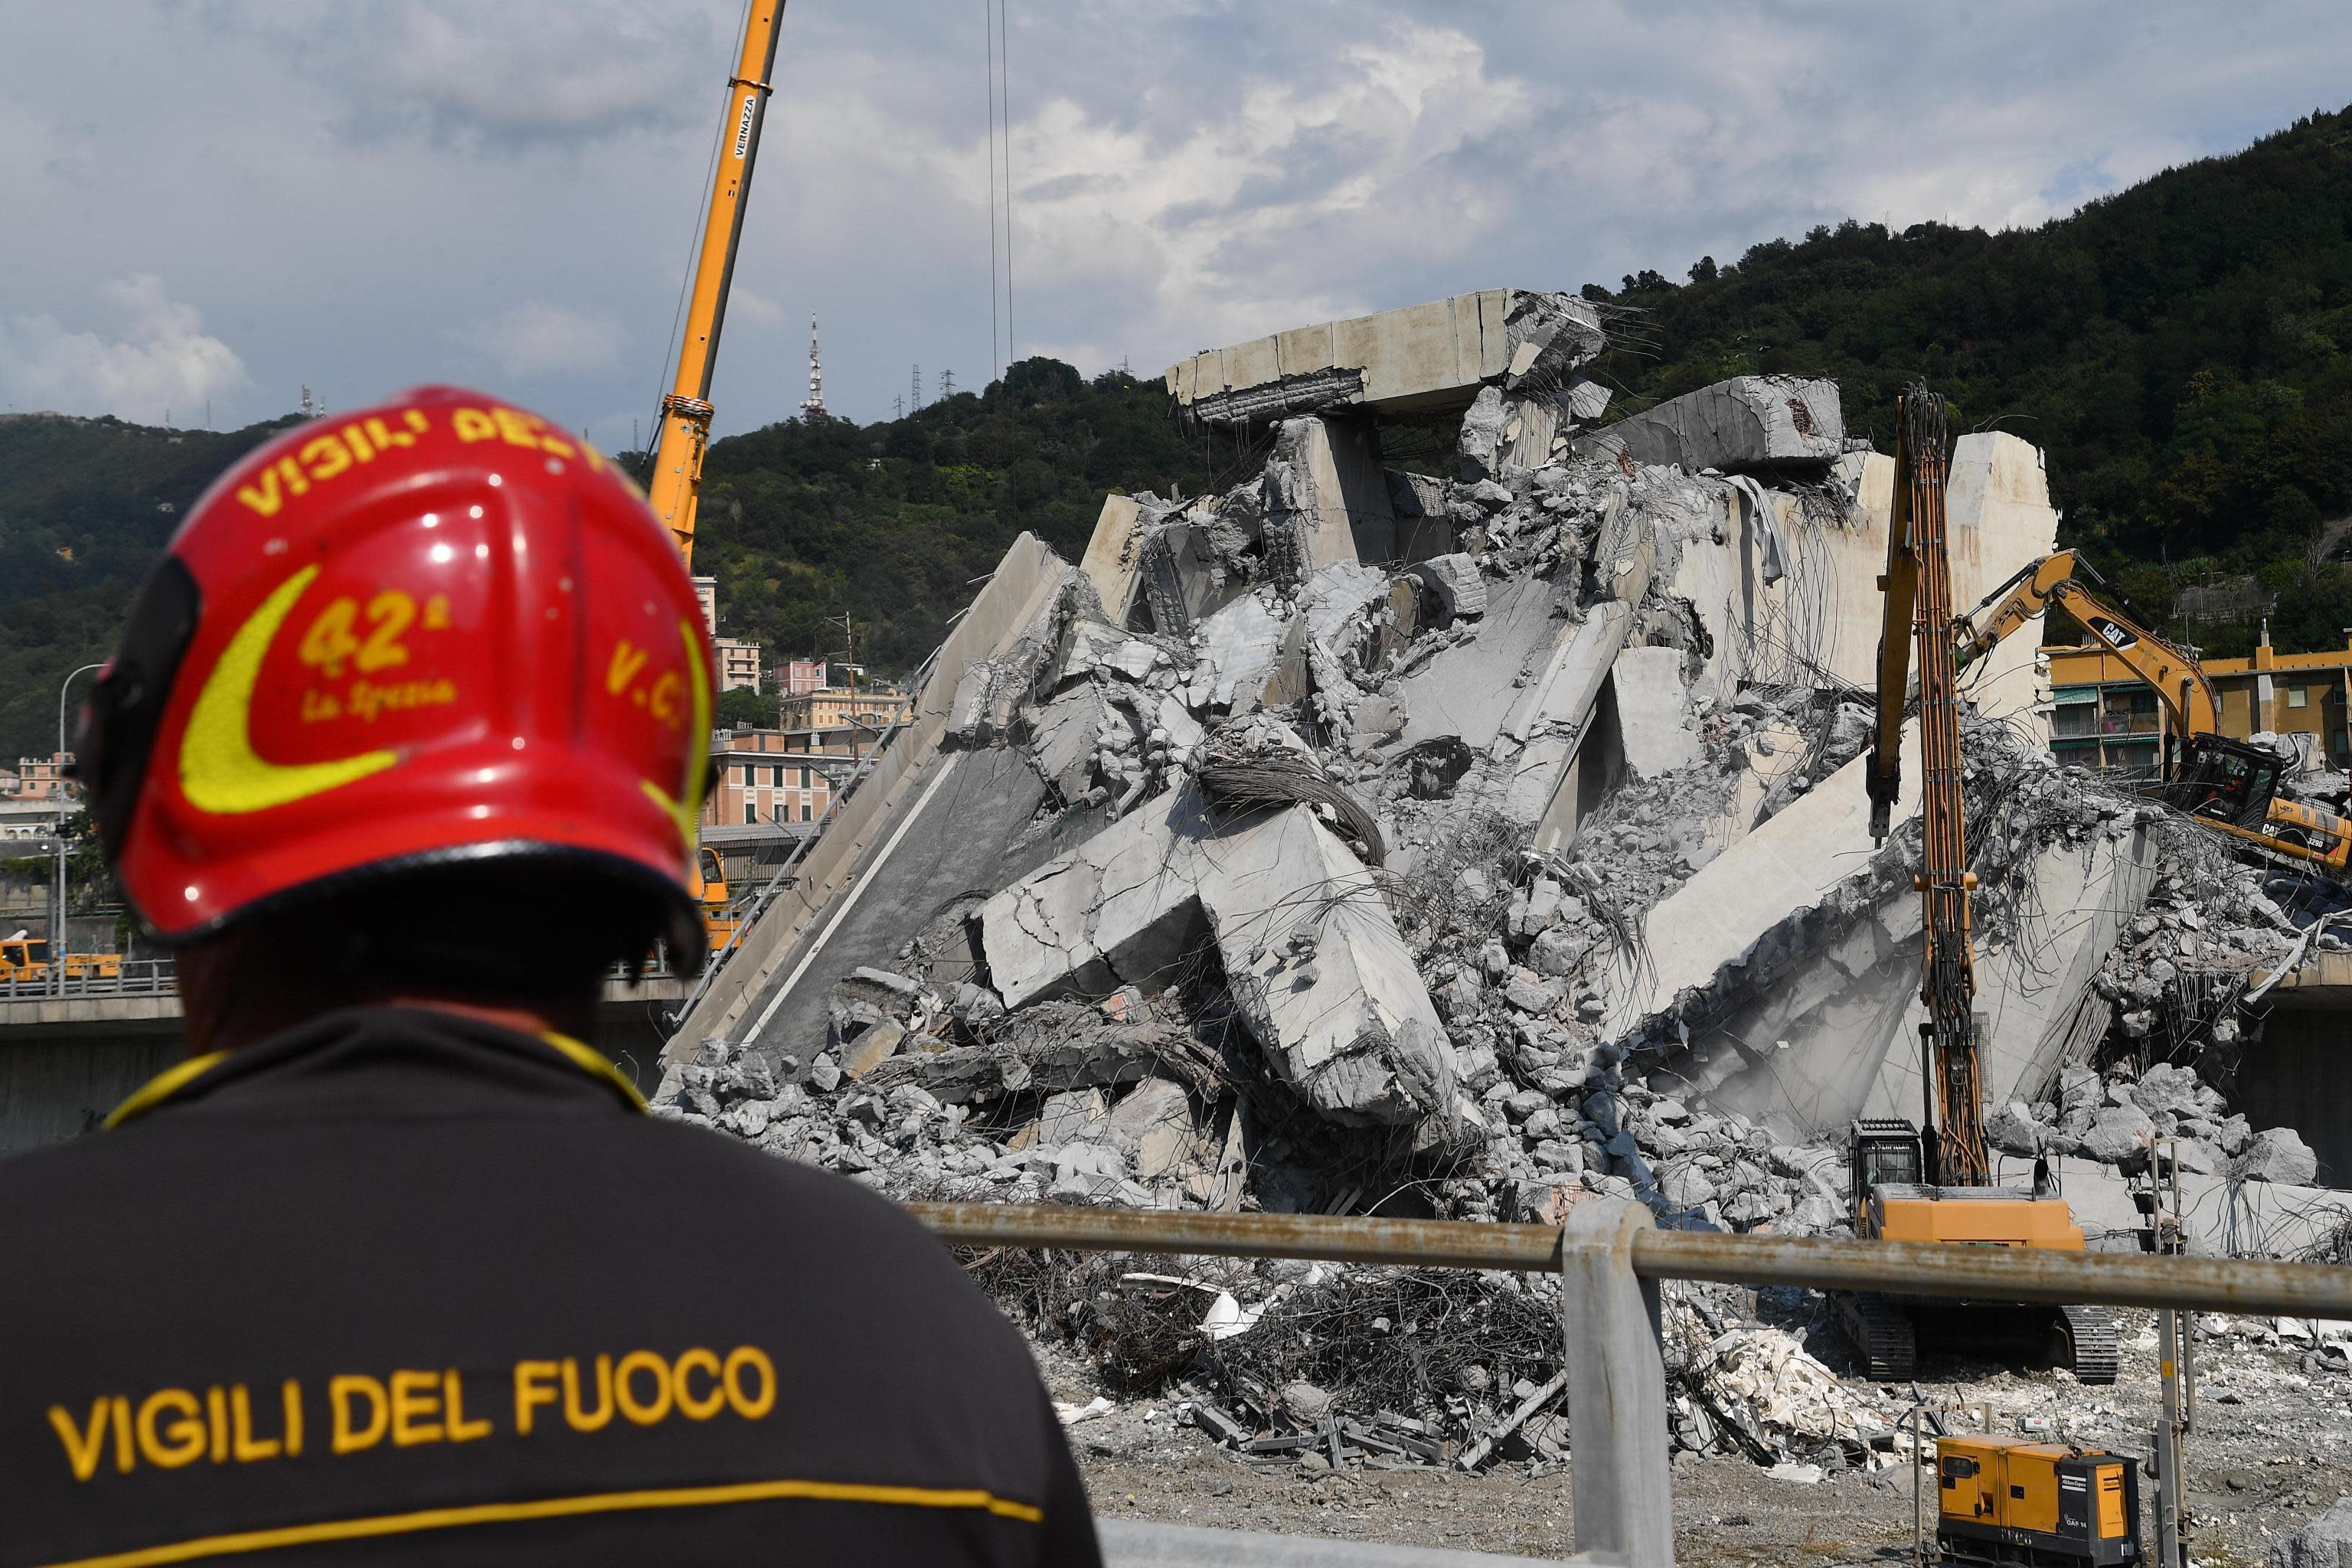 A firefighter look at caterpillars as they clear debris from the collapsed Morandi highway bridge, in Genoa, Italy, Friday, Aug. 17, 2018. Officials say 38 people are confirmed killed and 15 injured. Prosecutors say 10 to 20 people might be unaccounted-for and the death toll is expected to rise. (Luca Zennaro/ANSA via AP)